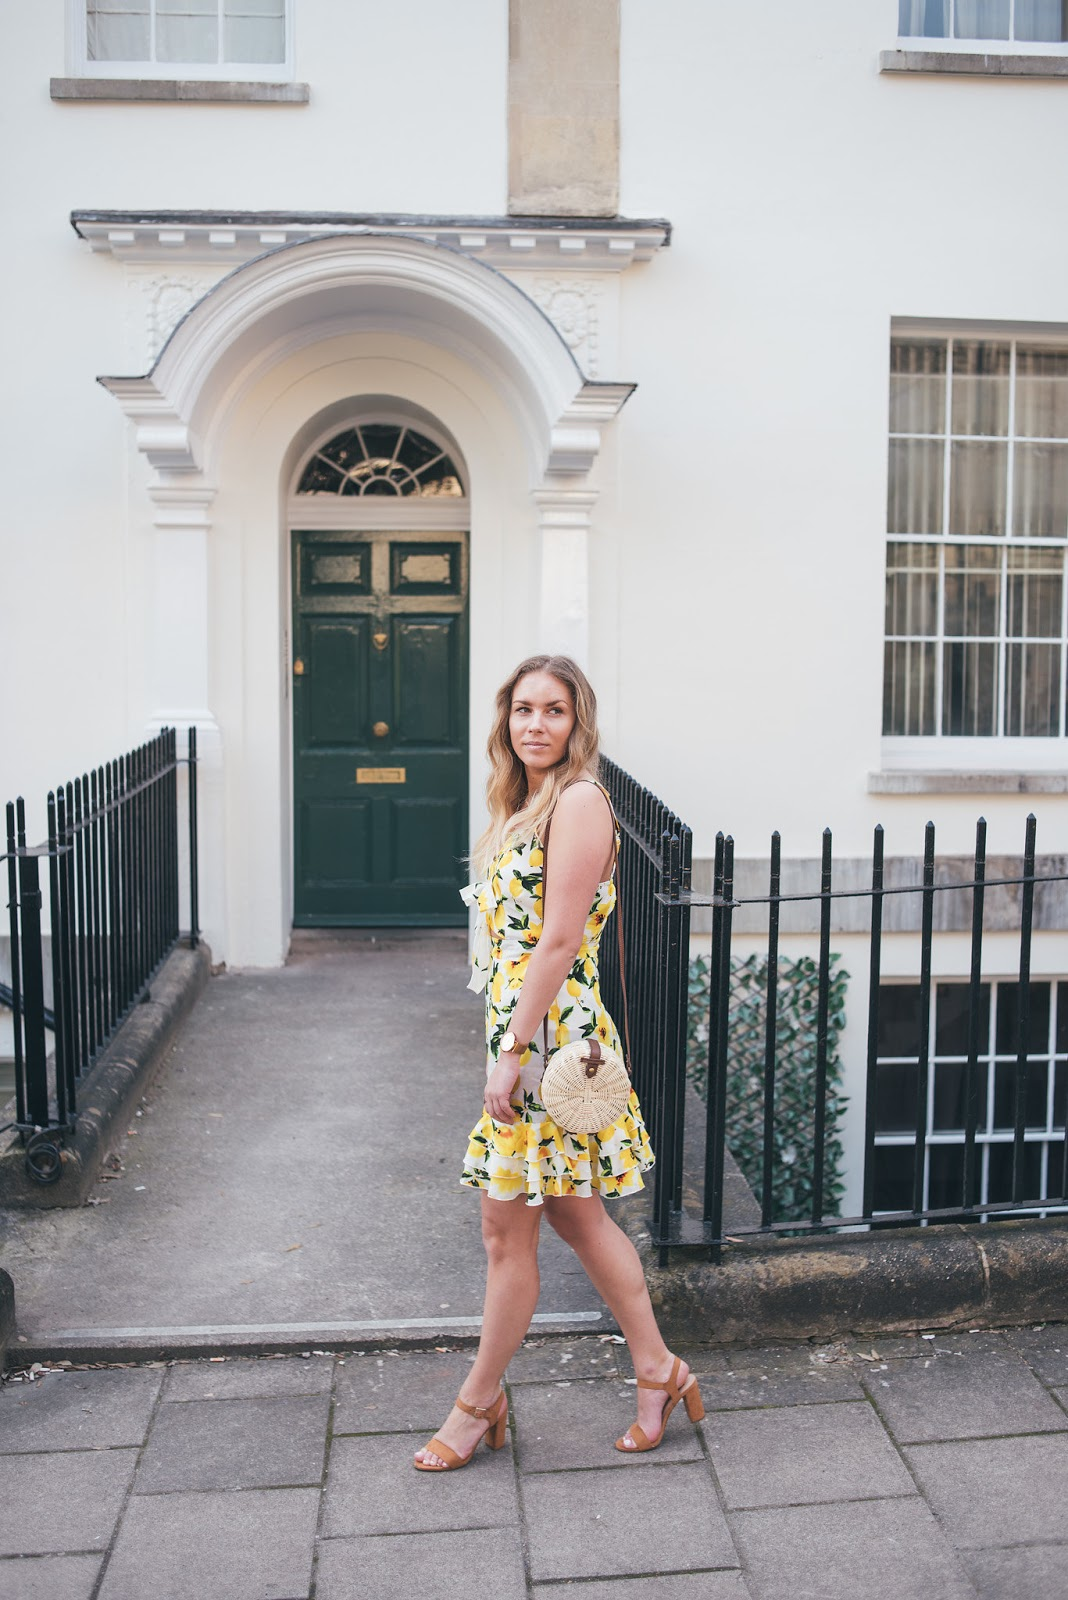 Rachel Emily in Lemon Print Dress in front of white houses with railings